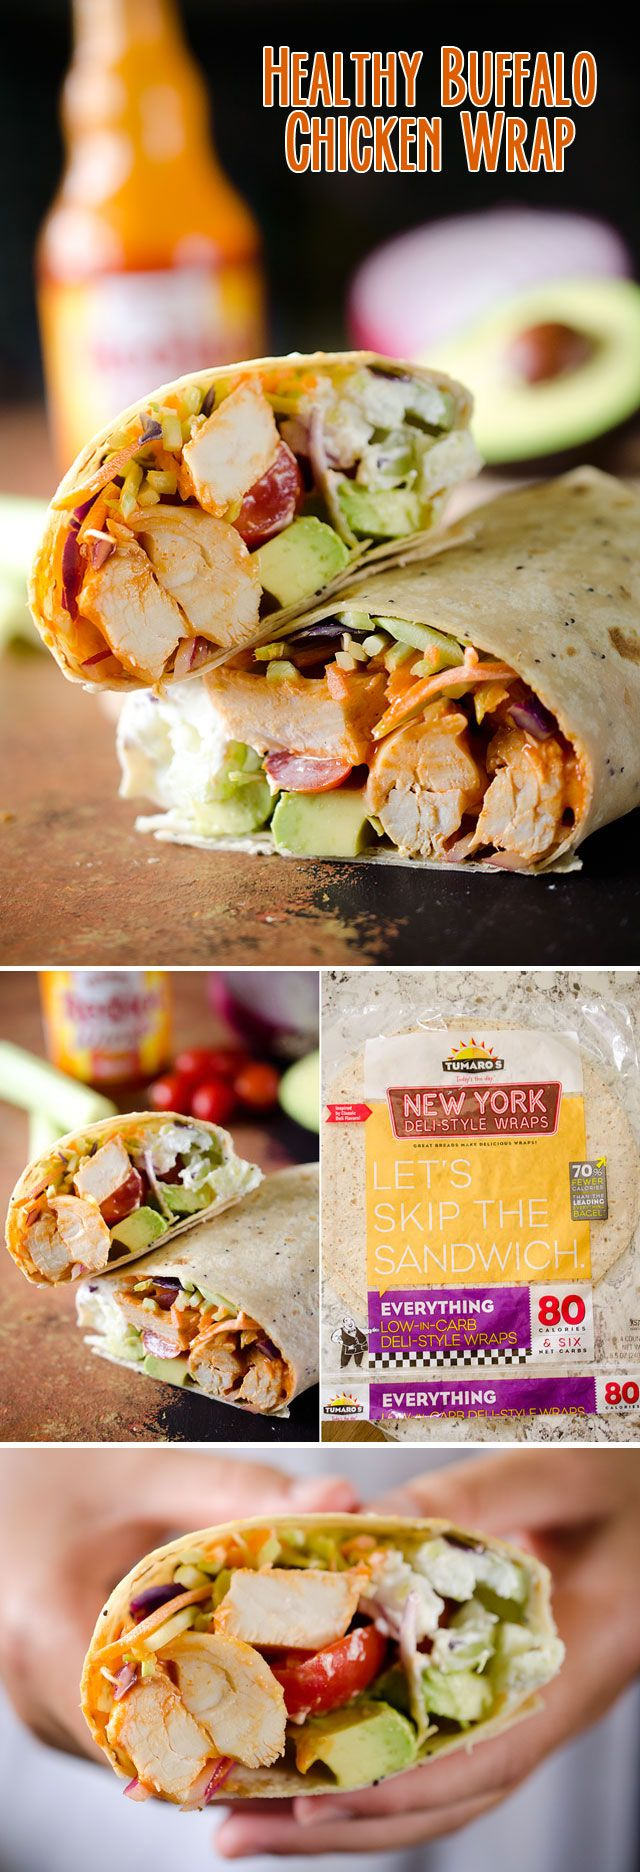 Healthy Buffalo Chicken Wrap - A light and healthy wrap filled with buffalo chicken breasts, Greek yogurt, bleu cheese crumbles, broccoli slaw,…